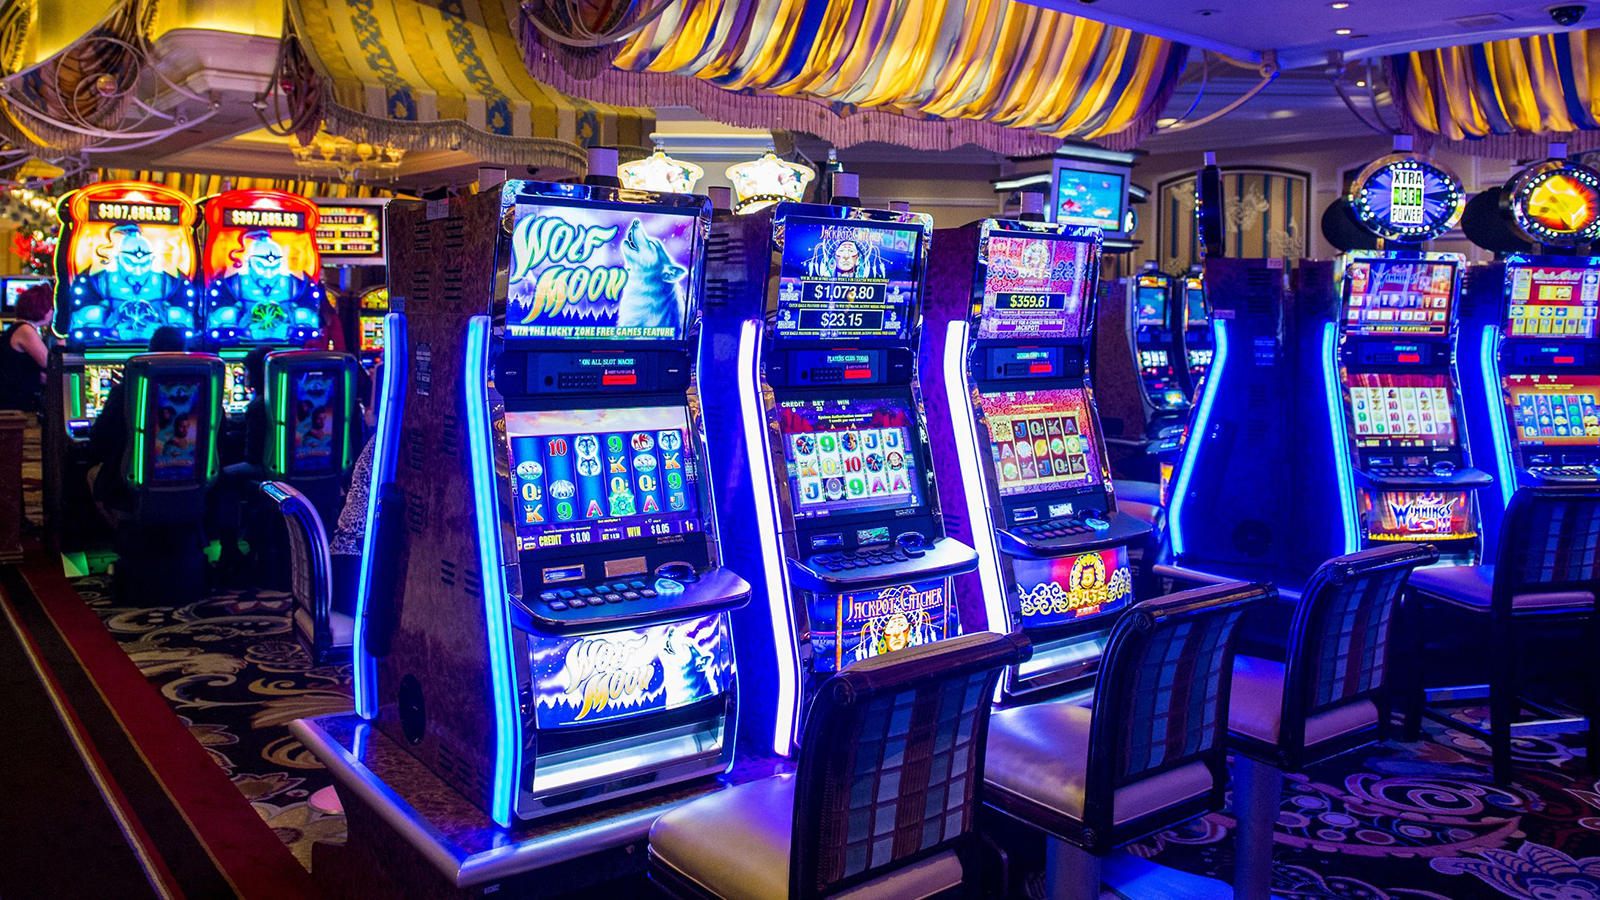 Practice Playing Online Slots to Make Big Wins